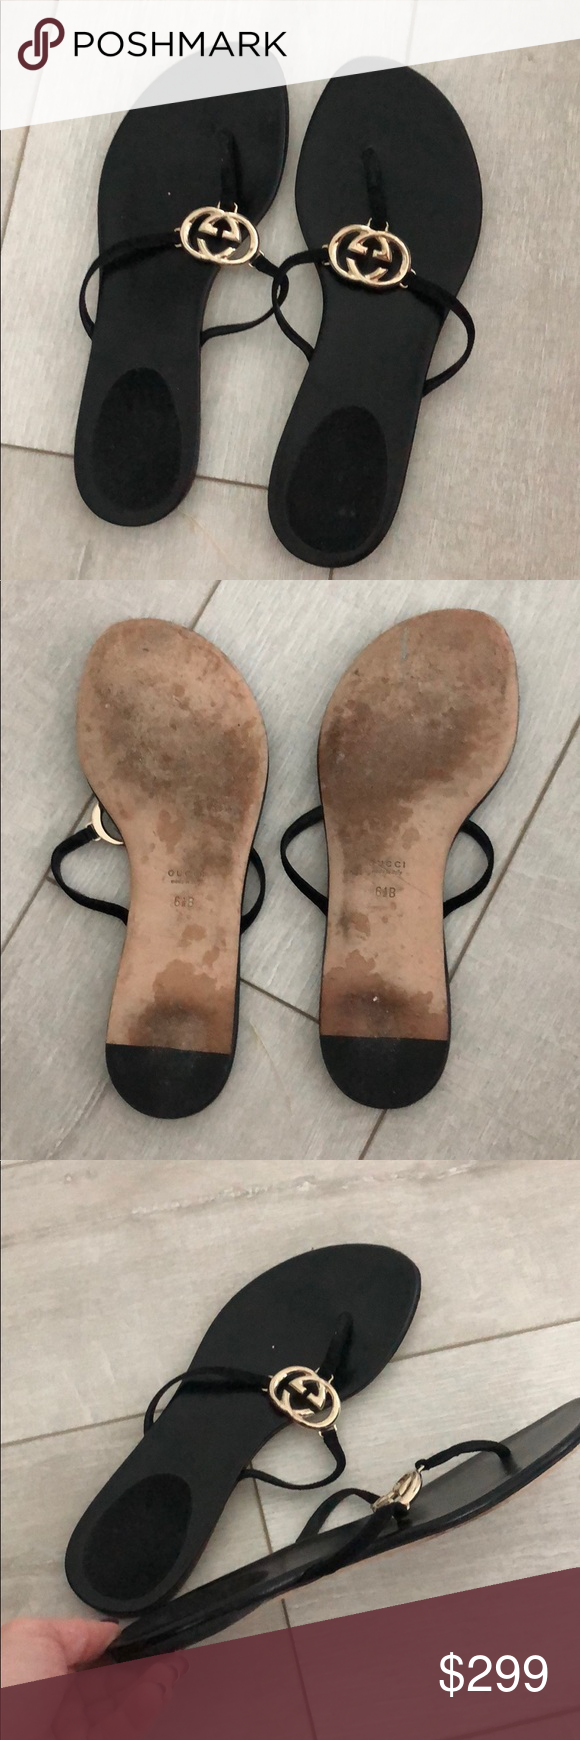 992f751e3d1 Women s Gucci sandals 100% authentic women s black Gucci sandals. Purchase  at Saks 5th Avenue